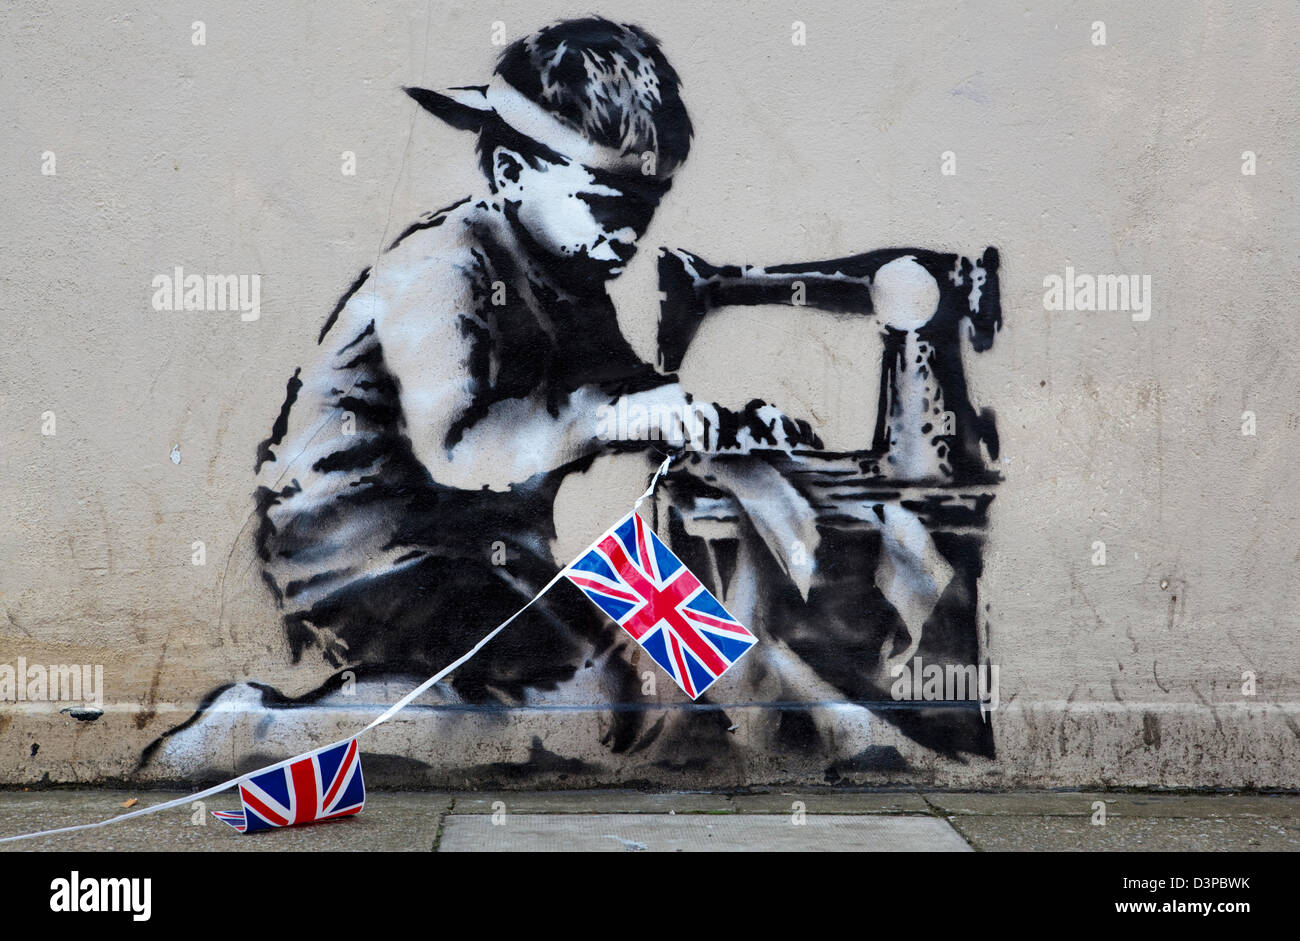 A Work From Graffiti Artist Banksy That Appeared On A Wall Of The Retailer Poundland Shortly Before The Start Of The 2012 Olympic Games In The City Has Been